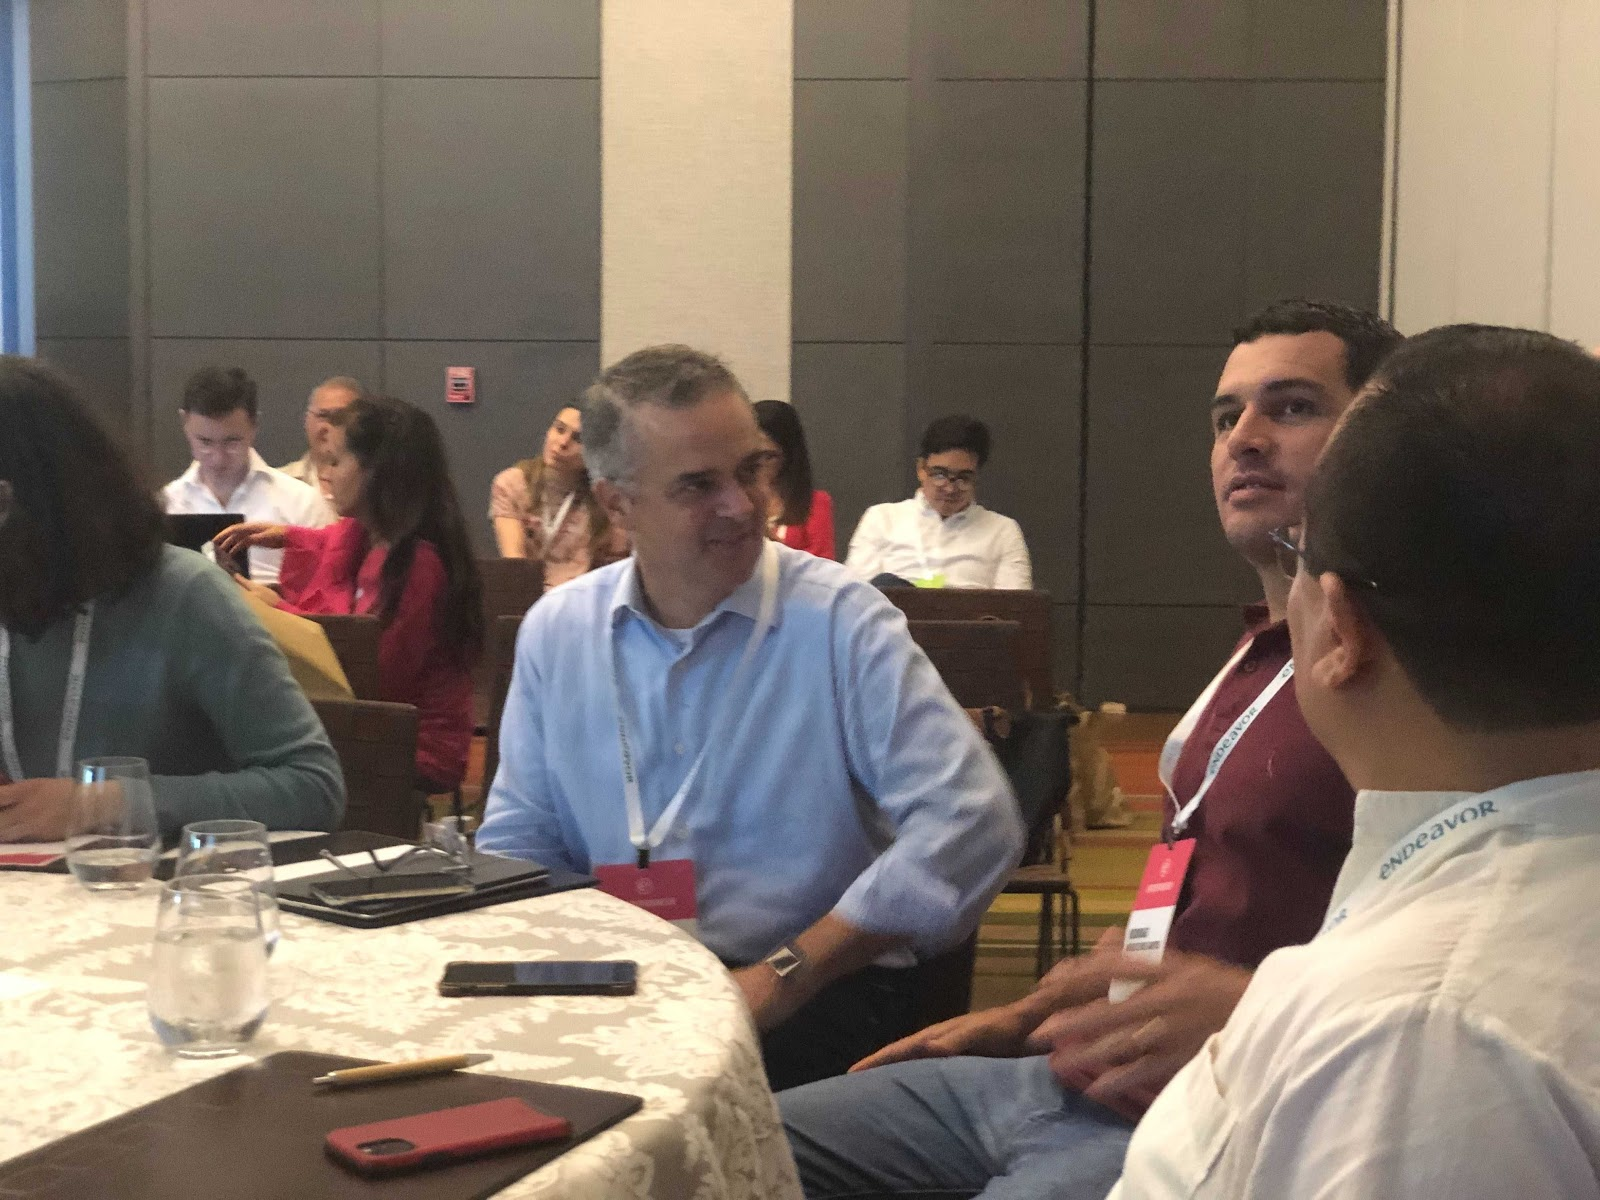 Aaron Gani, Founder of <i>Behavr</i>, Selected as Endeavor Entrepreneur at the 92nd International Selection Panel in Riviera Maya, Mexico